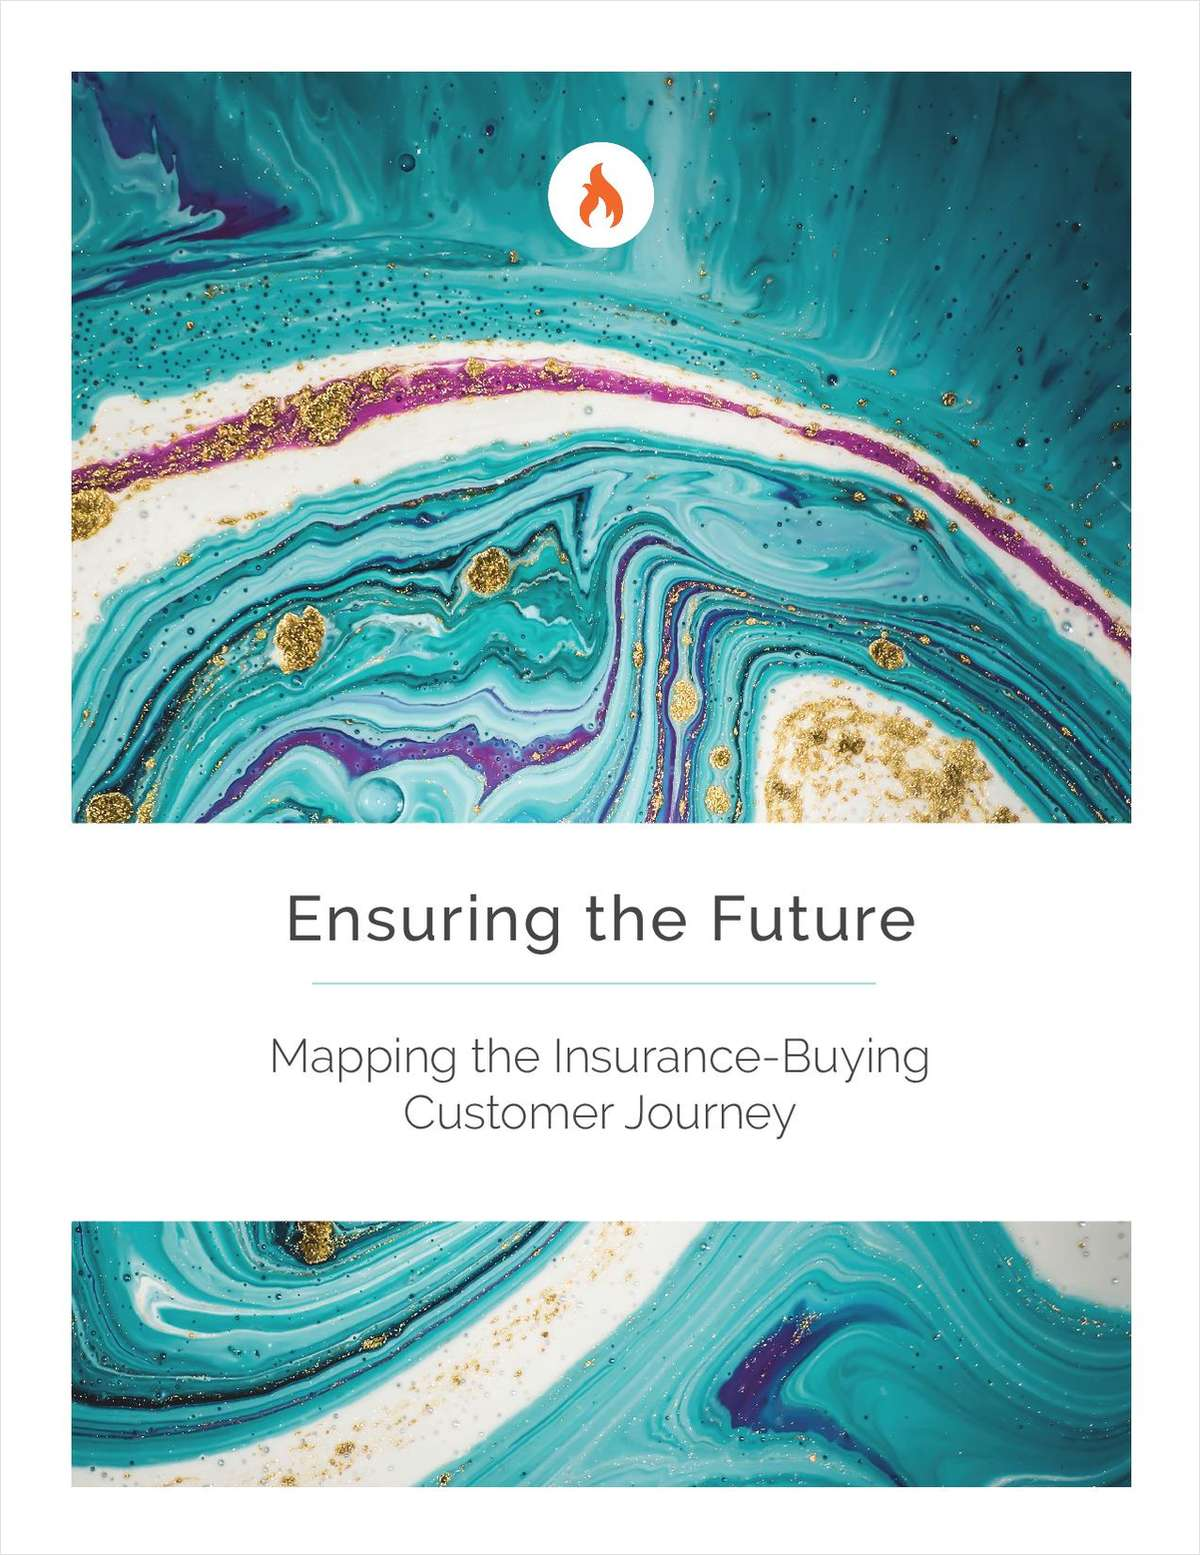 Ensuring the Future: Mapping the Insurance-Buying Customer Journey